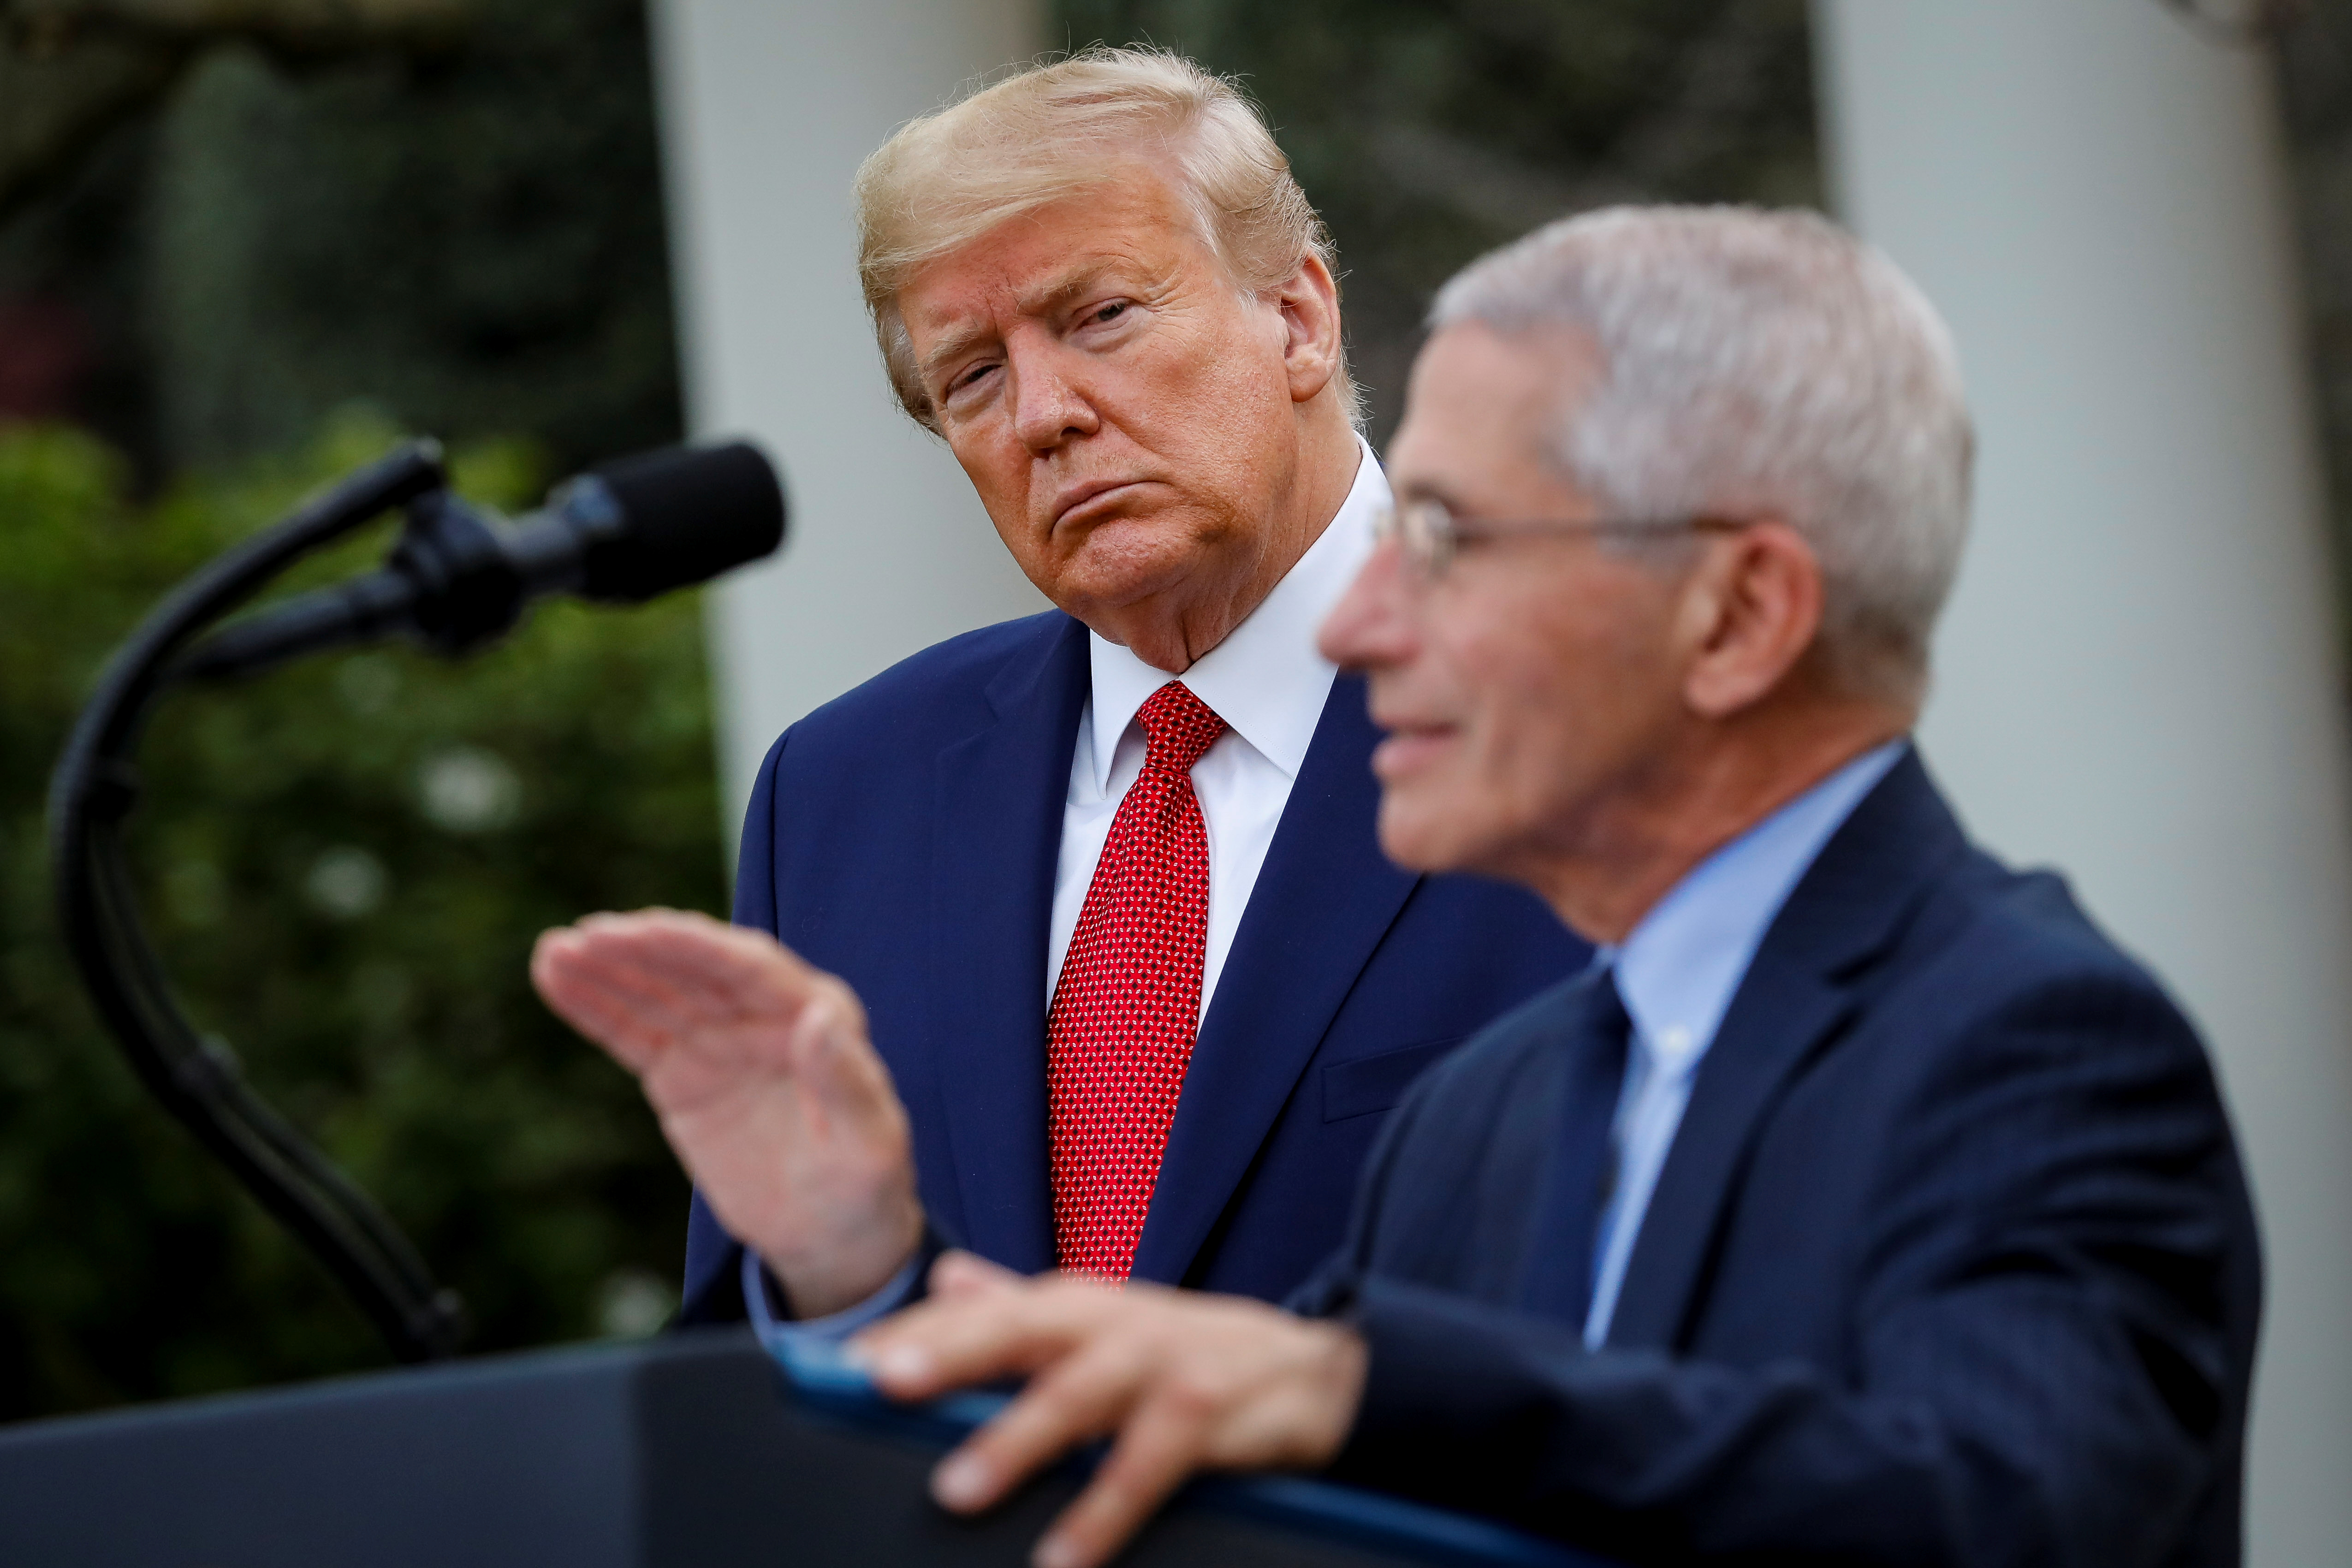 NIH National Institute of Allergy and Infectious Diseases Director Anthony Fauci speaks as U.S. President Donald Trump listens during a news conference in the Rose Garden of the White House in Washington, U.S., March 29, 2020.